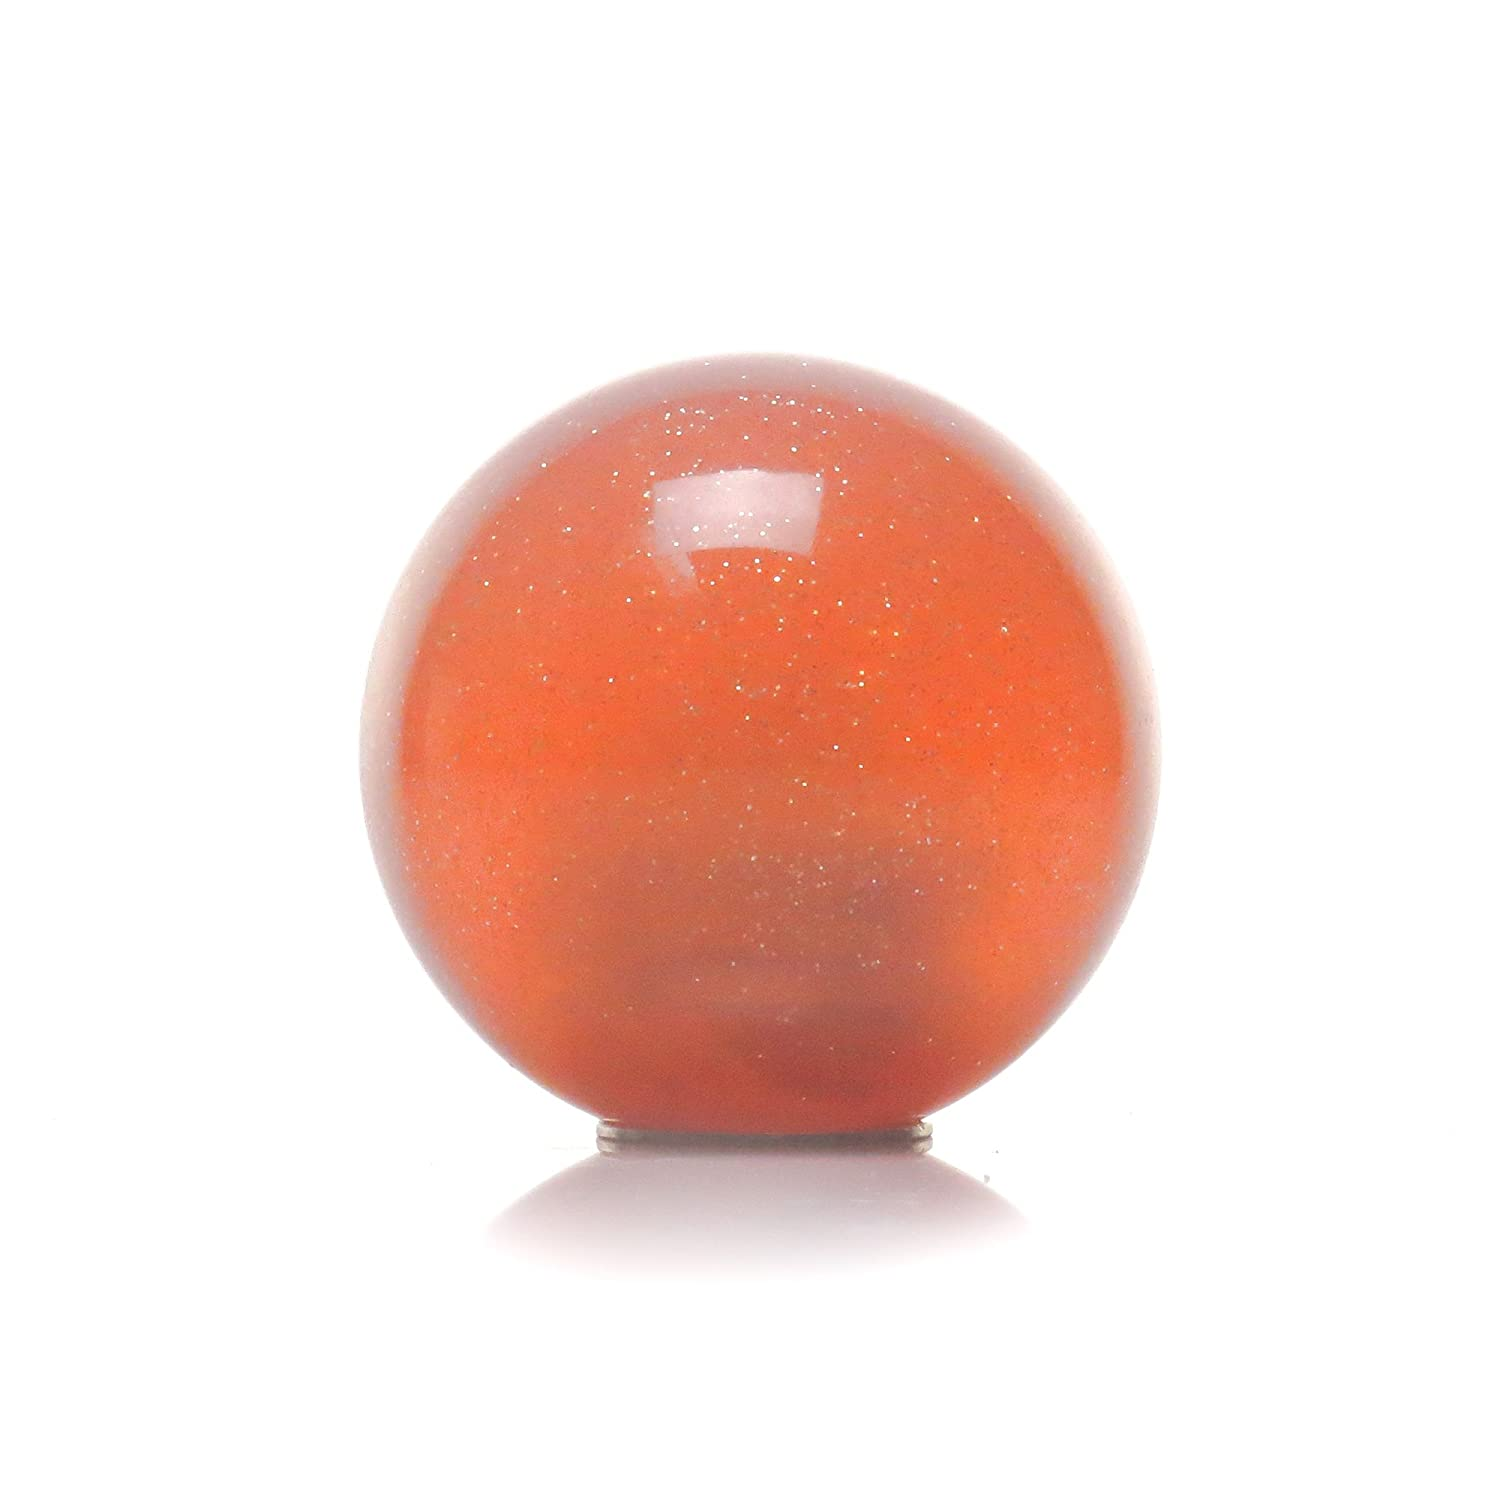 White Anarchy American Shifter 45949 Orange Metal Flake Shift Knob with 16mm x 1.5 Insert